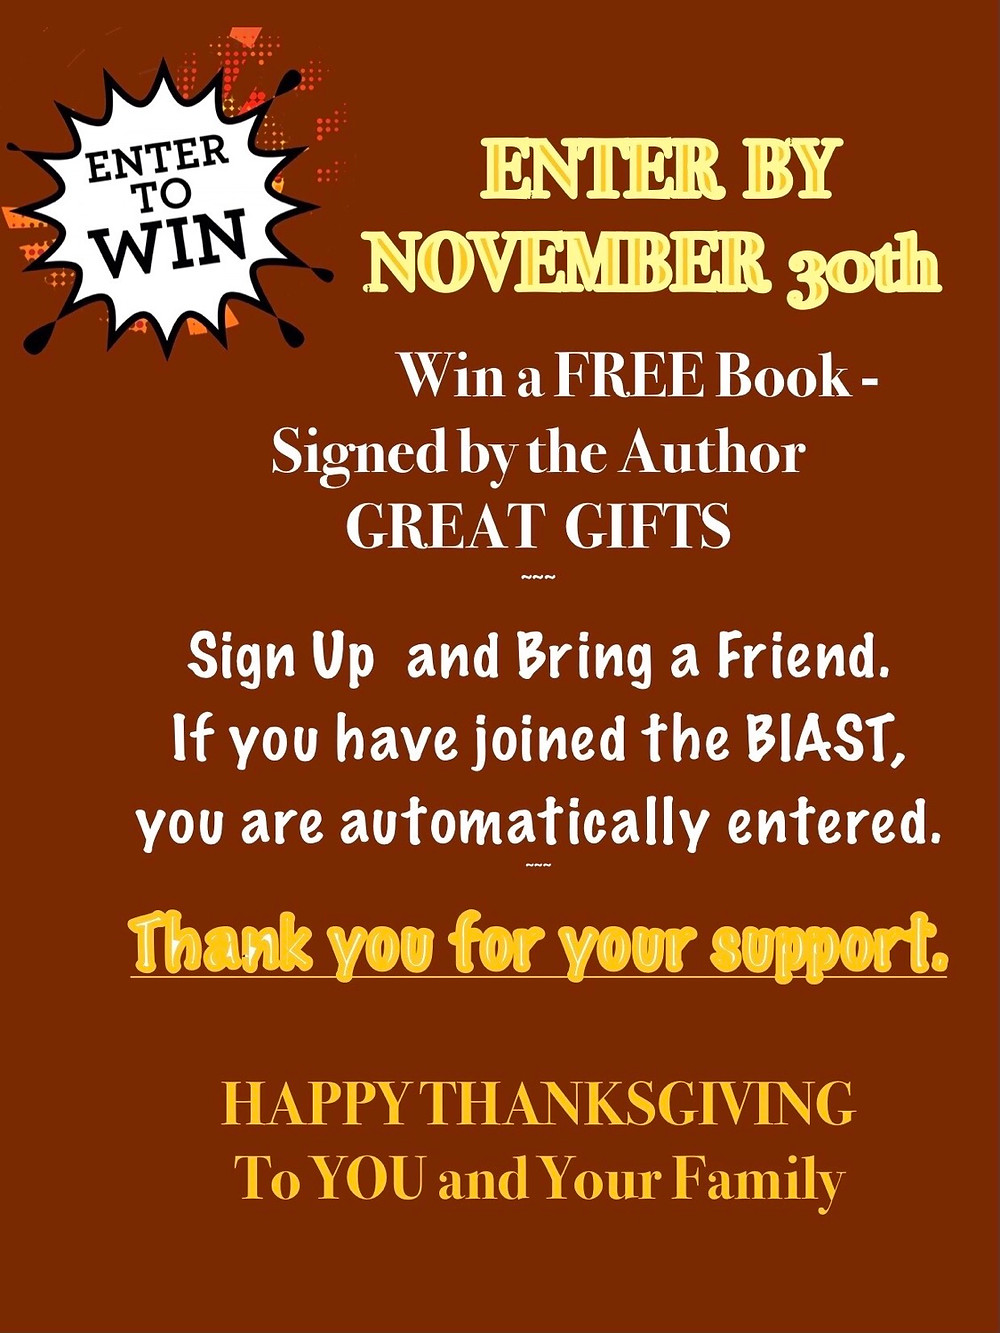 ENTER  BY  NOVEMBER  30th  Win a FREE Book - Signed by the Author  - Great Gift! Sign Up  and Bring a Friend. If you have joined the BlAST, you are automatically entered. ~~~ Thank you for your support.  HAPPY THANKSGIVING To YOU and Your Family  https://www.cherylmcneilfisher.com/ https://www.cherylmcneilfisher.com/